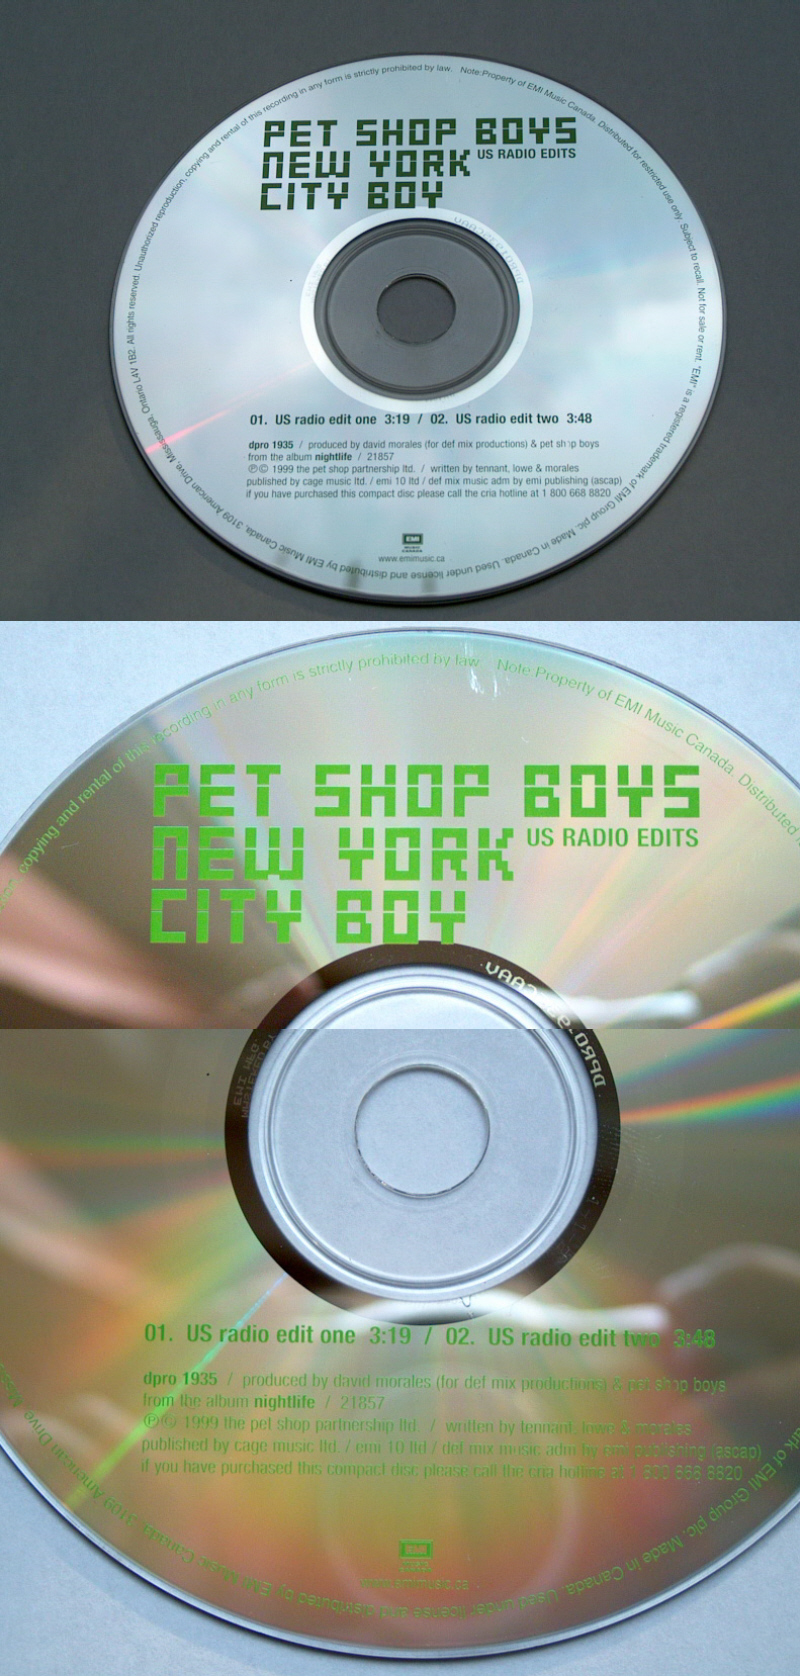 absolut hard to find 'original' Canadian promotion CD of New Your City Boy - even the promo CD-R with the same tracklisting is easier to find! Seems only 10-20 really exist